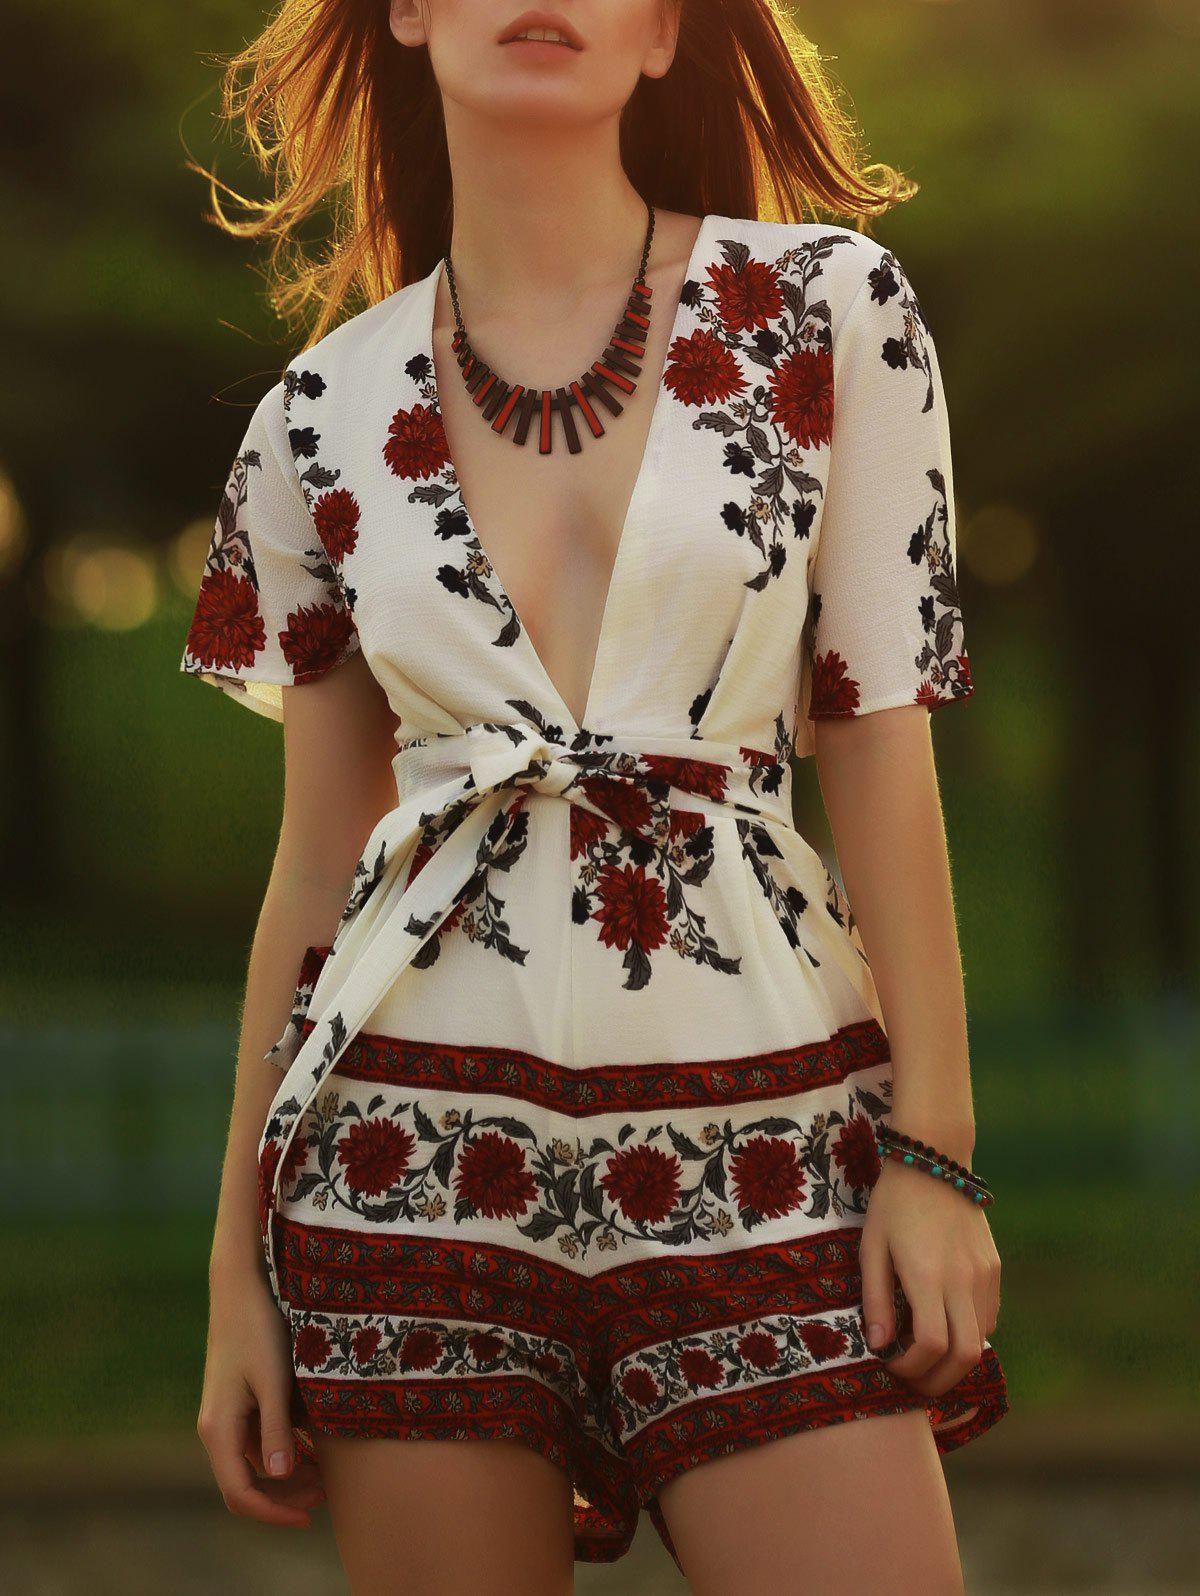 Trendy Women's Plunging Neckline Short Sleeve Floral Print Romper - RED S